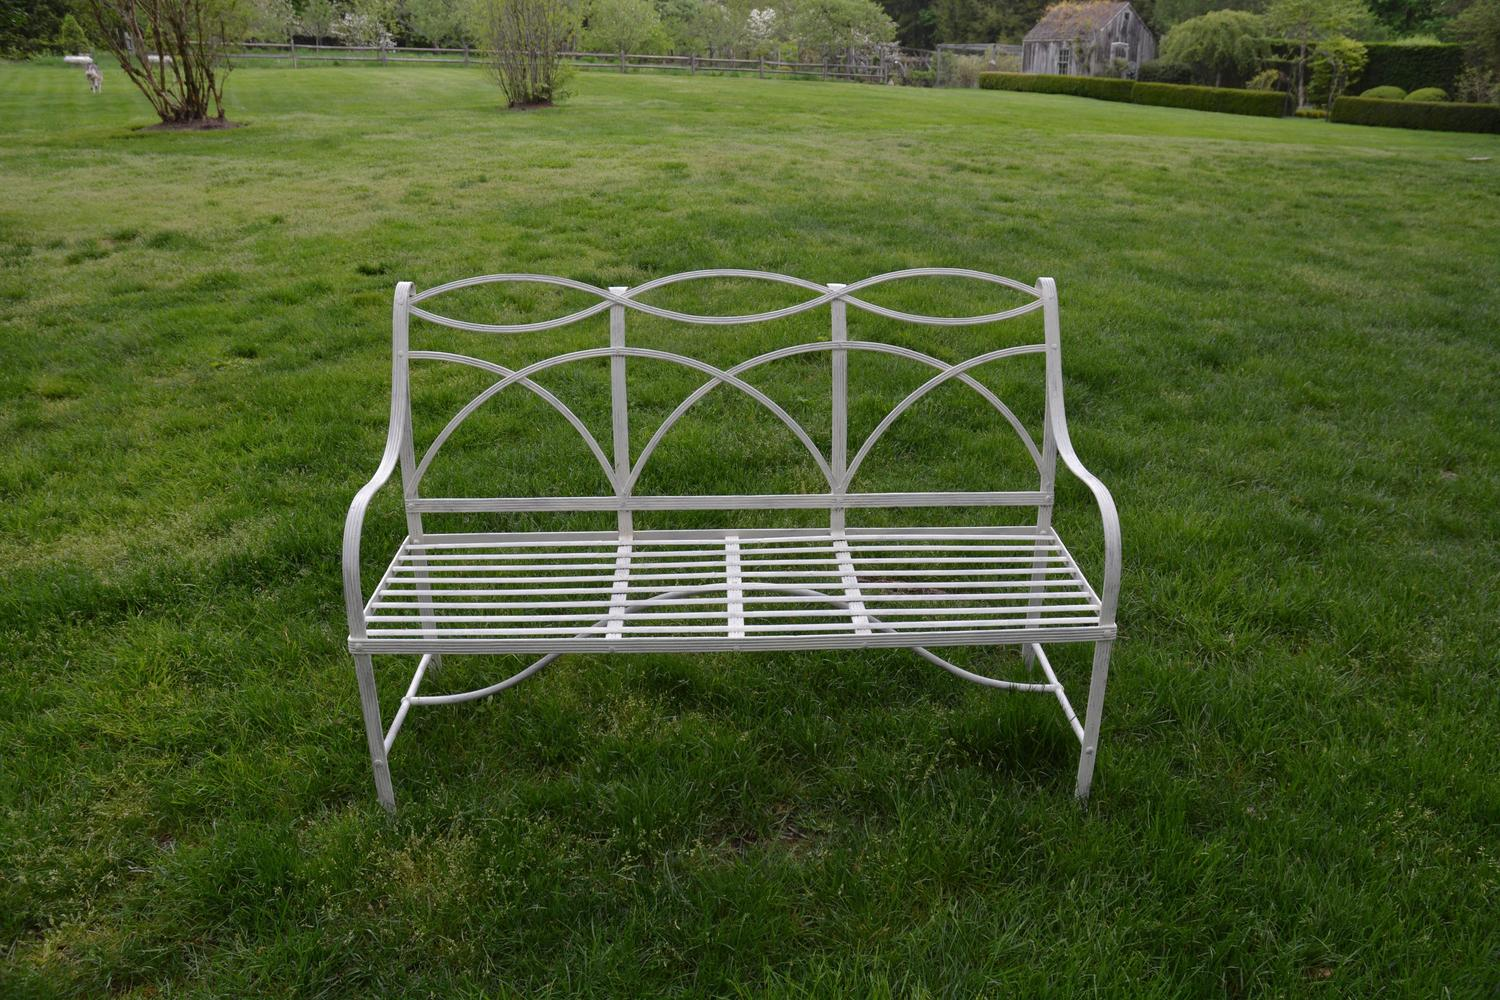 Garden Bench With Wrought Iron Elements For Sale At 1stdibs